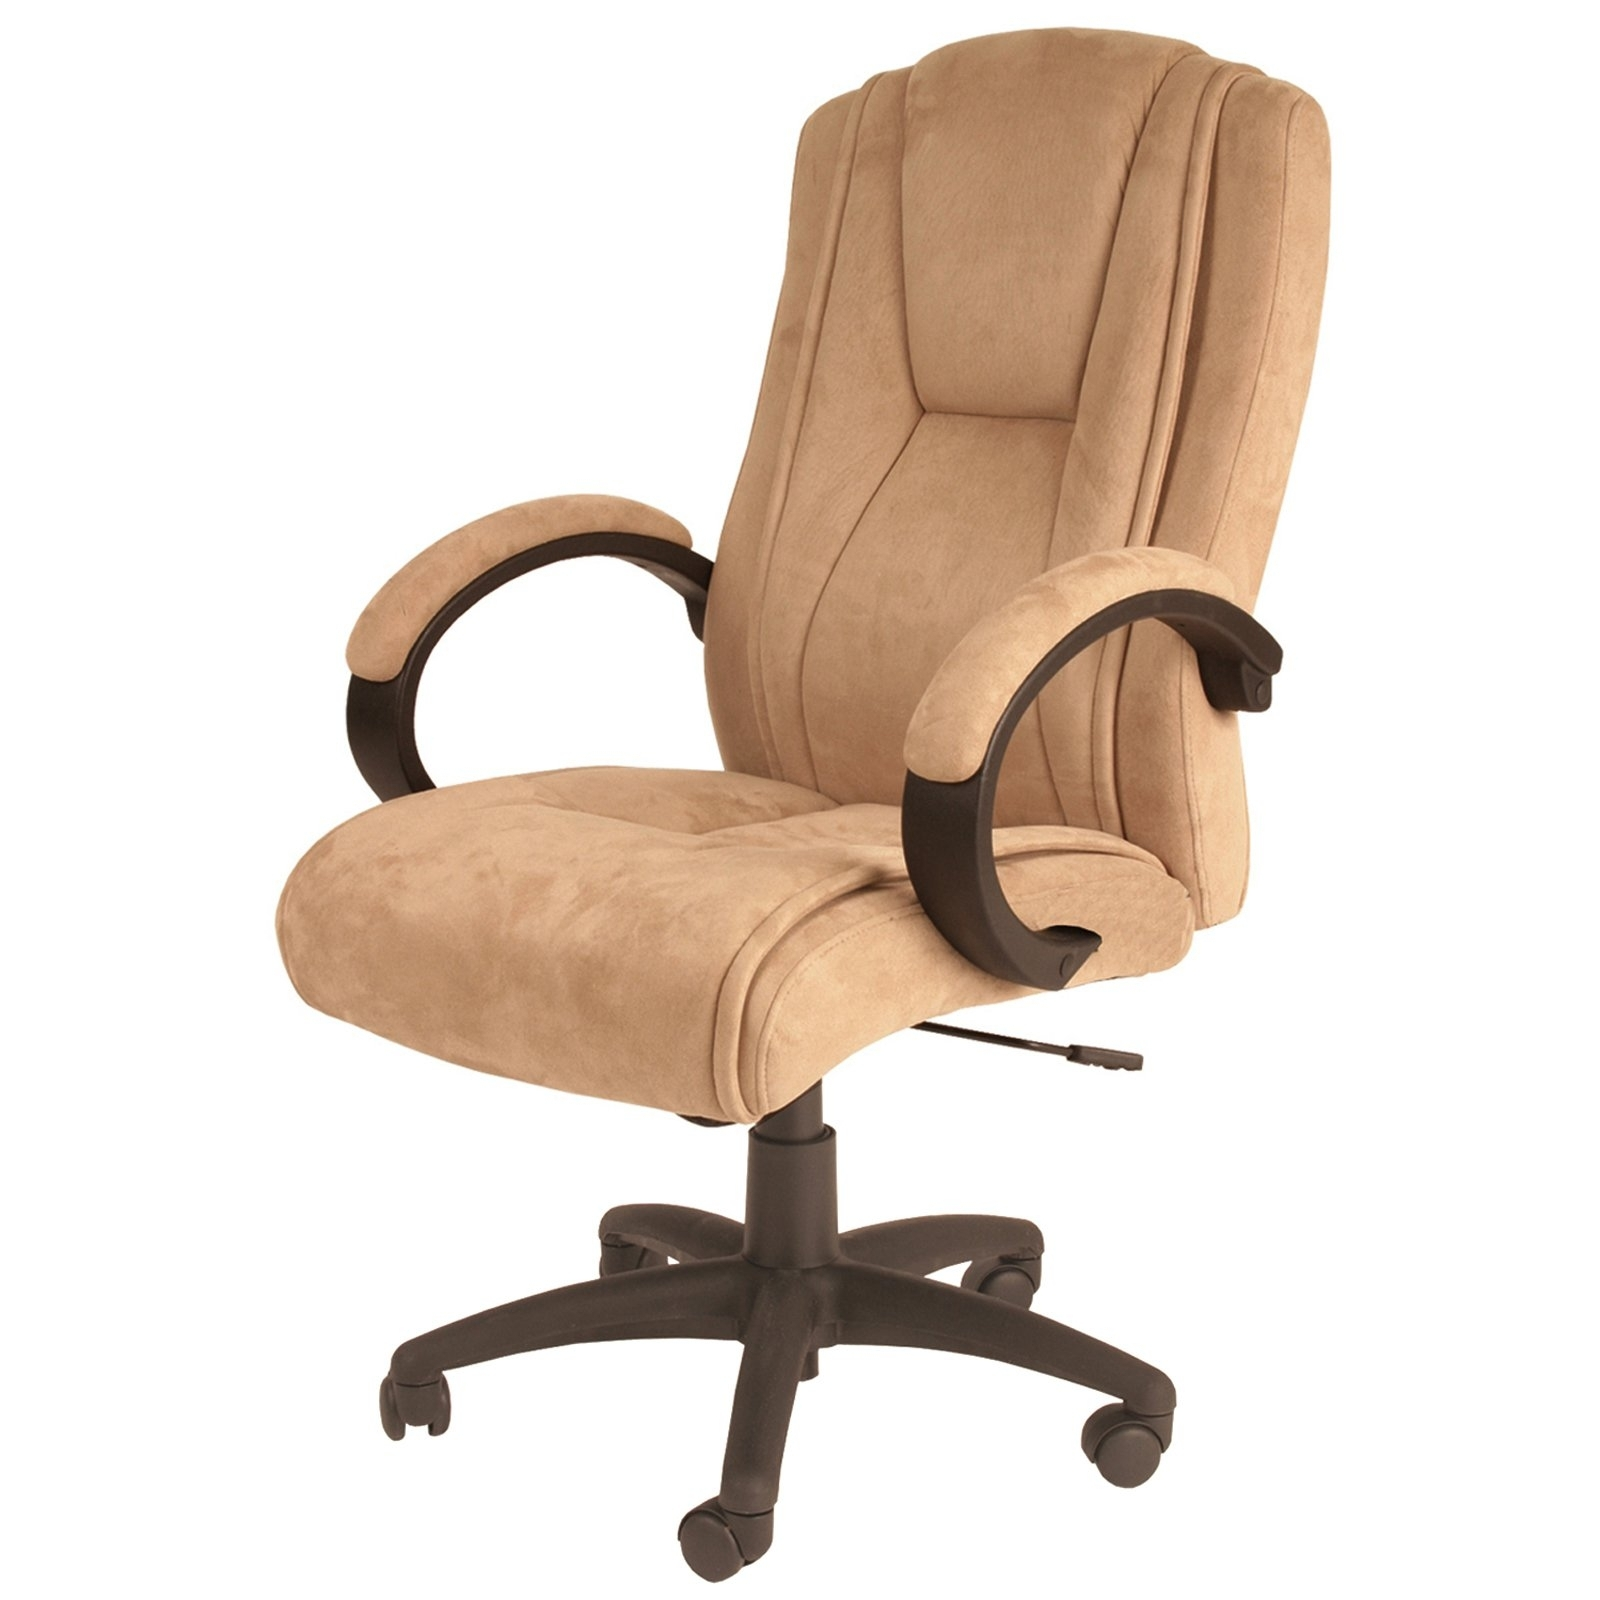 Brown Executive Office Chairs Pertaining To Most Up To Date Tan Suede Office Chair • Office Chairs (View 7 of 20)